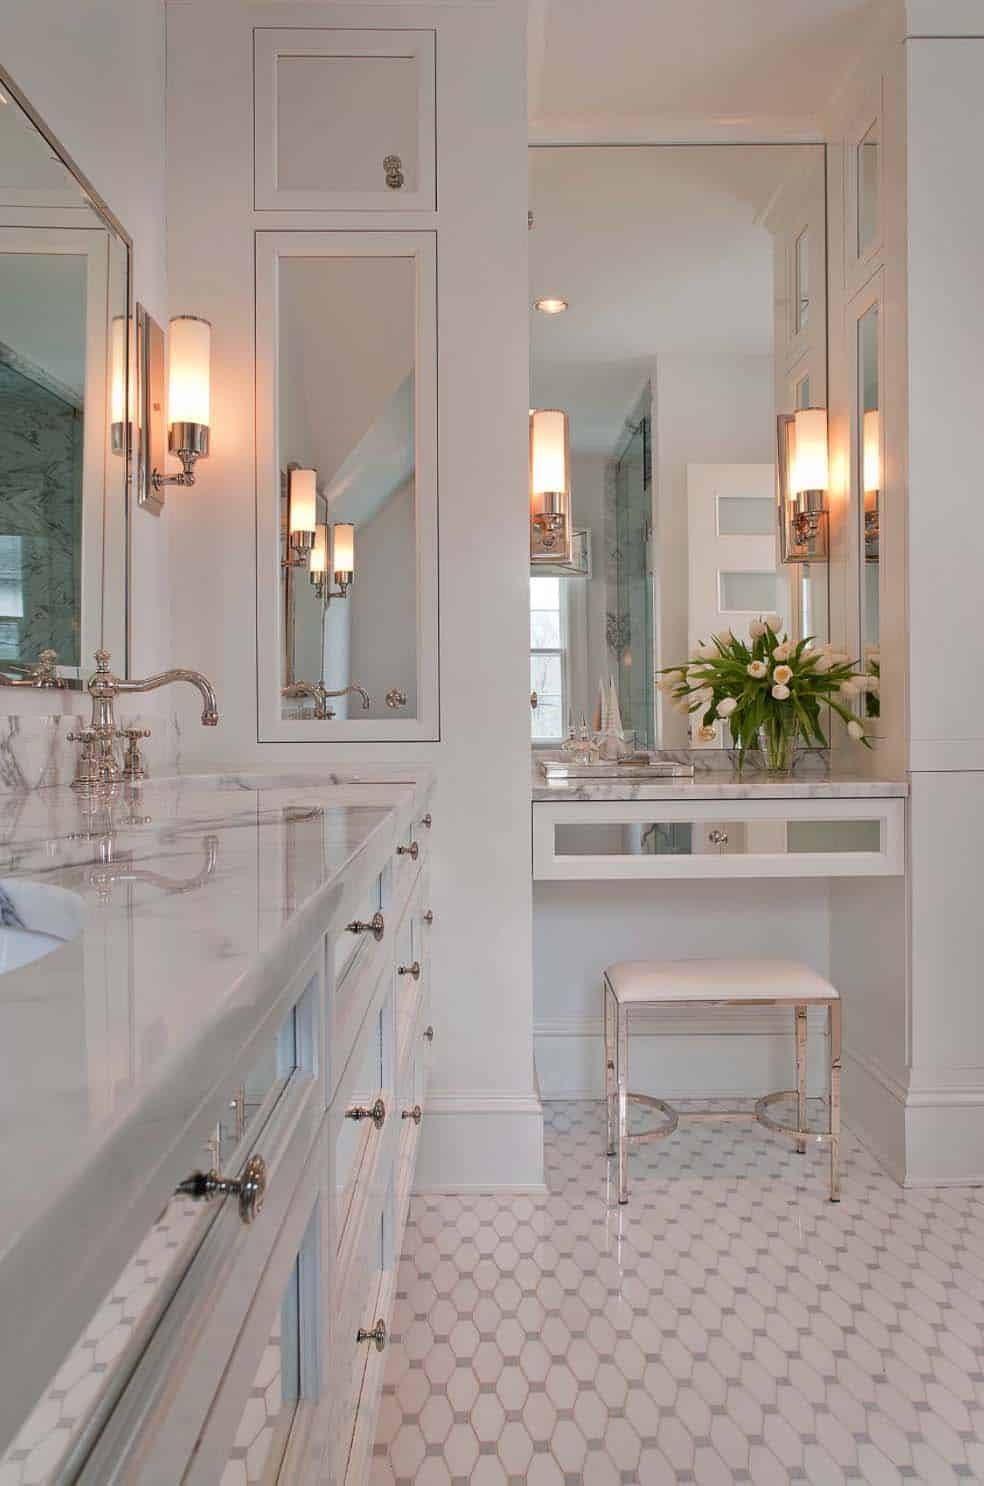 Traditional Bathroom Design Ideas-24-1 Kindesign